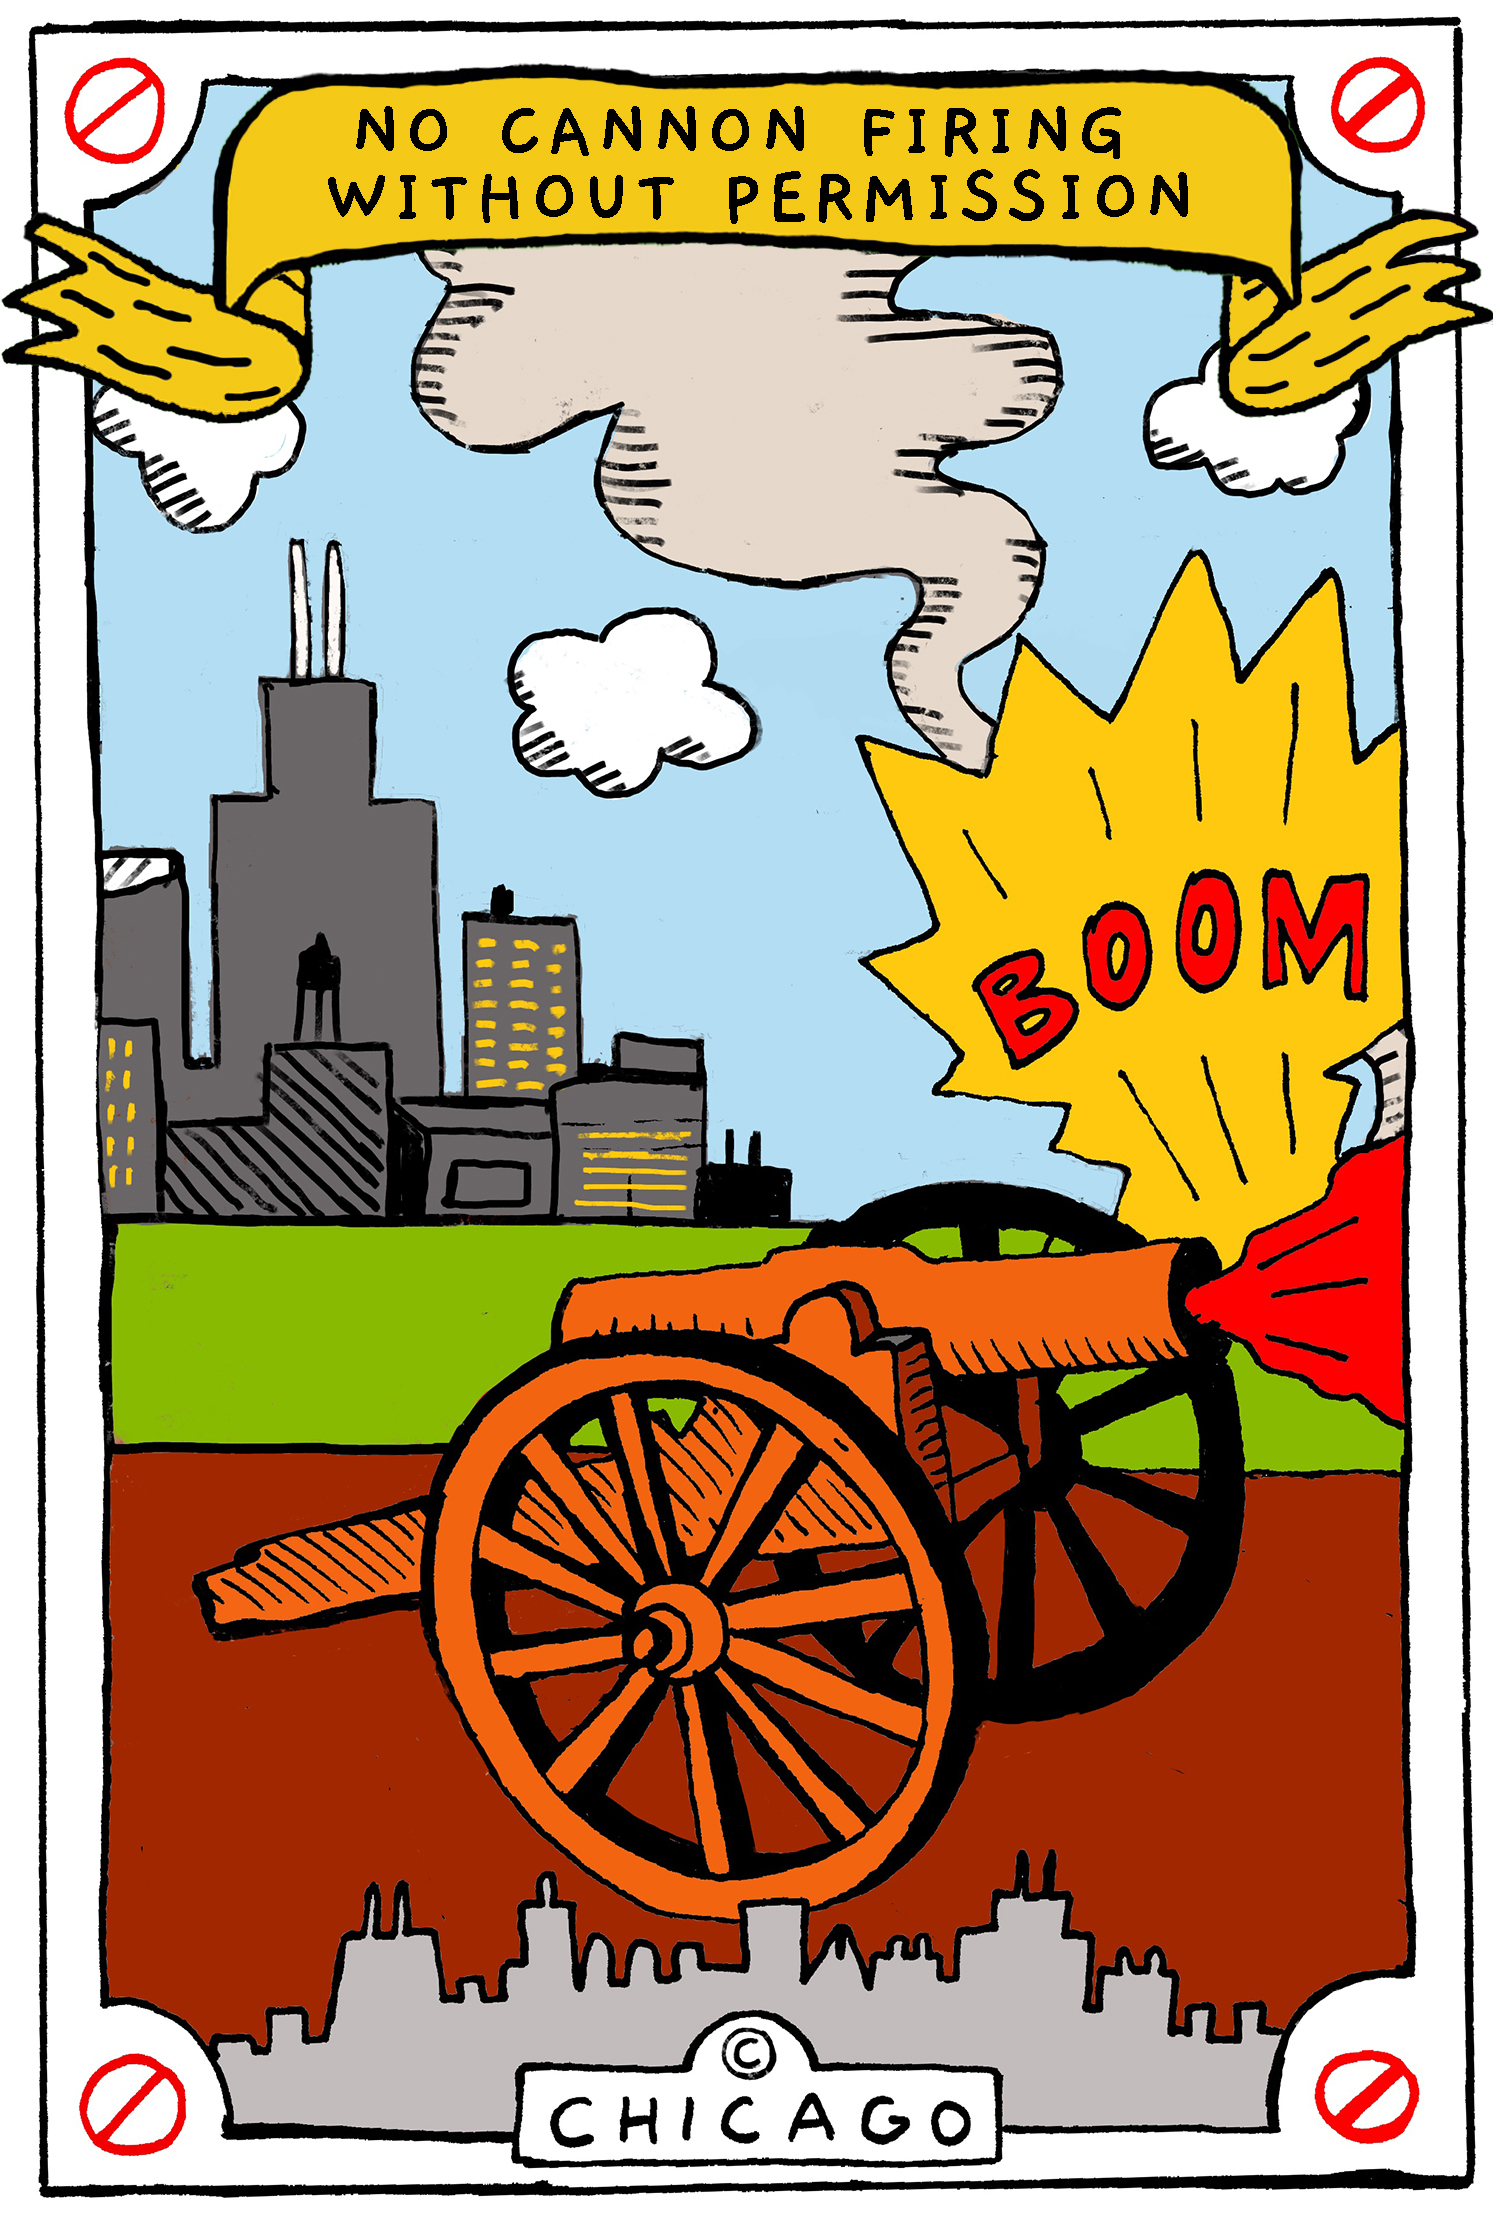 This is a drawing of a cannon being fired on a city block in Chicago.